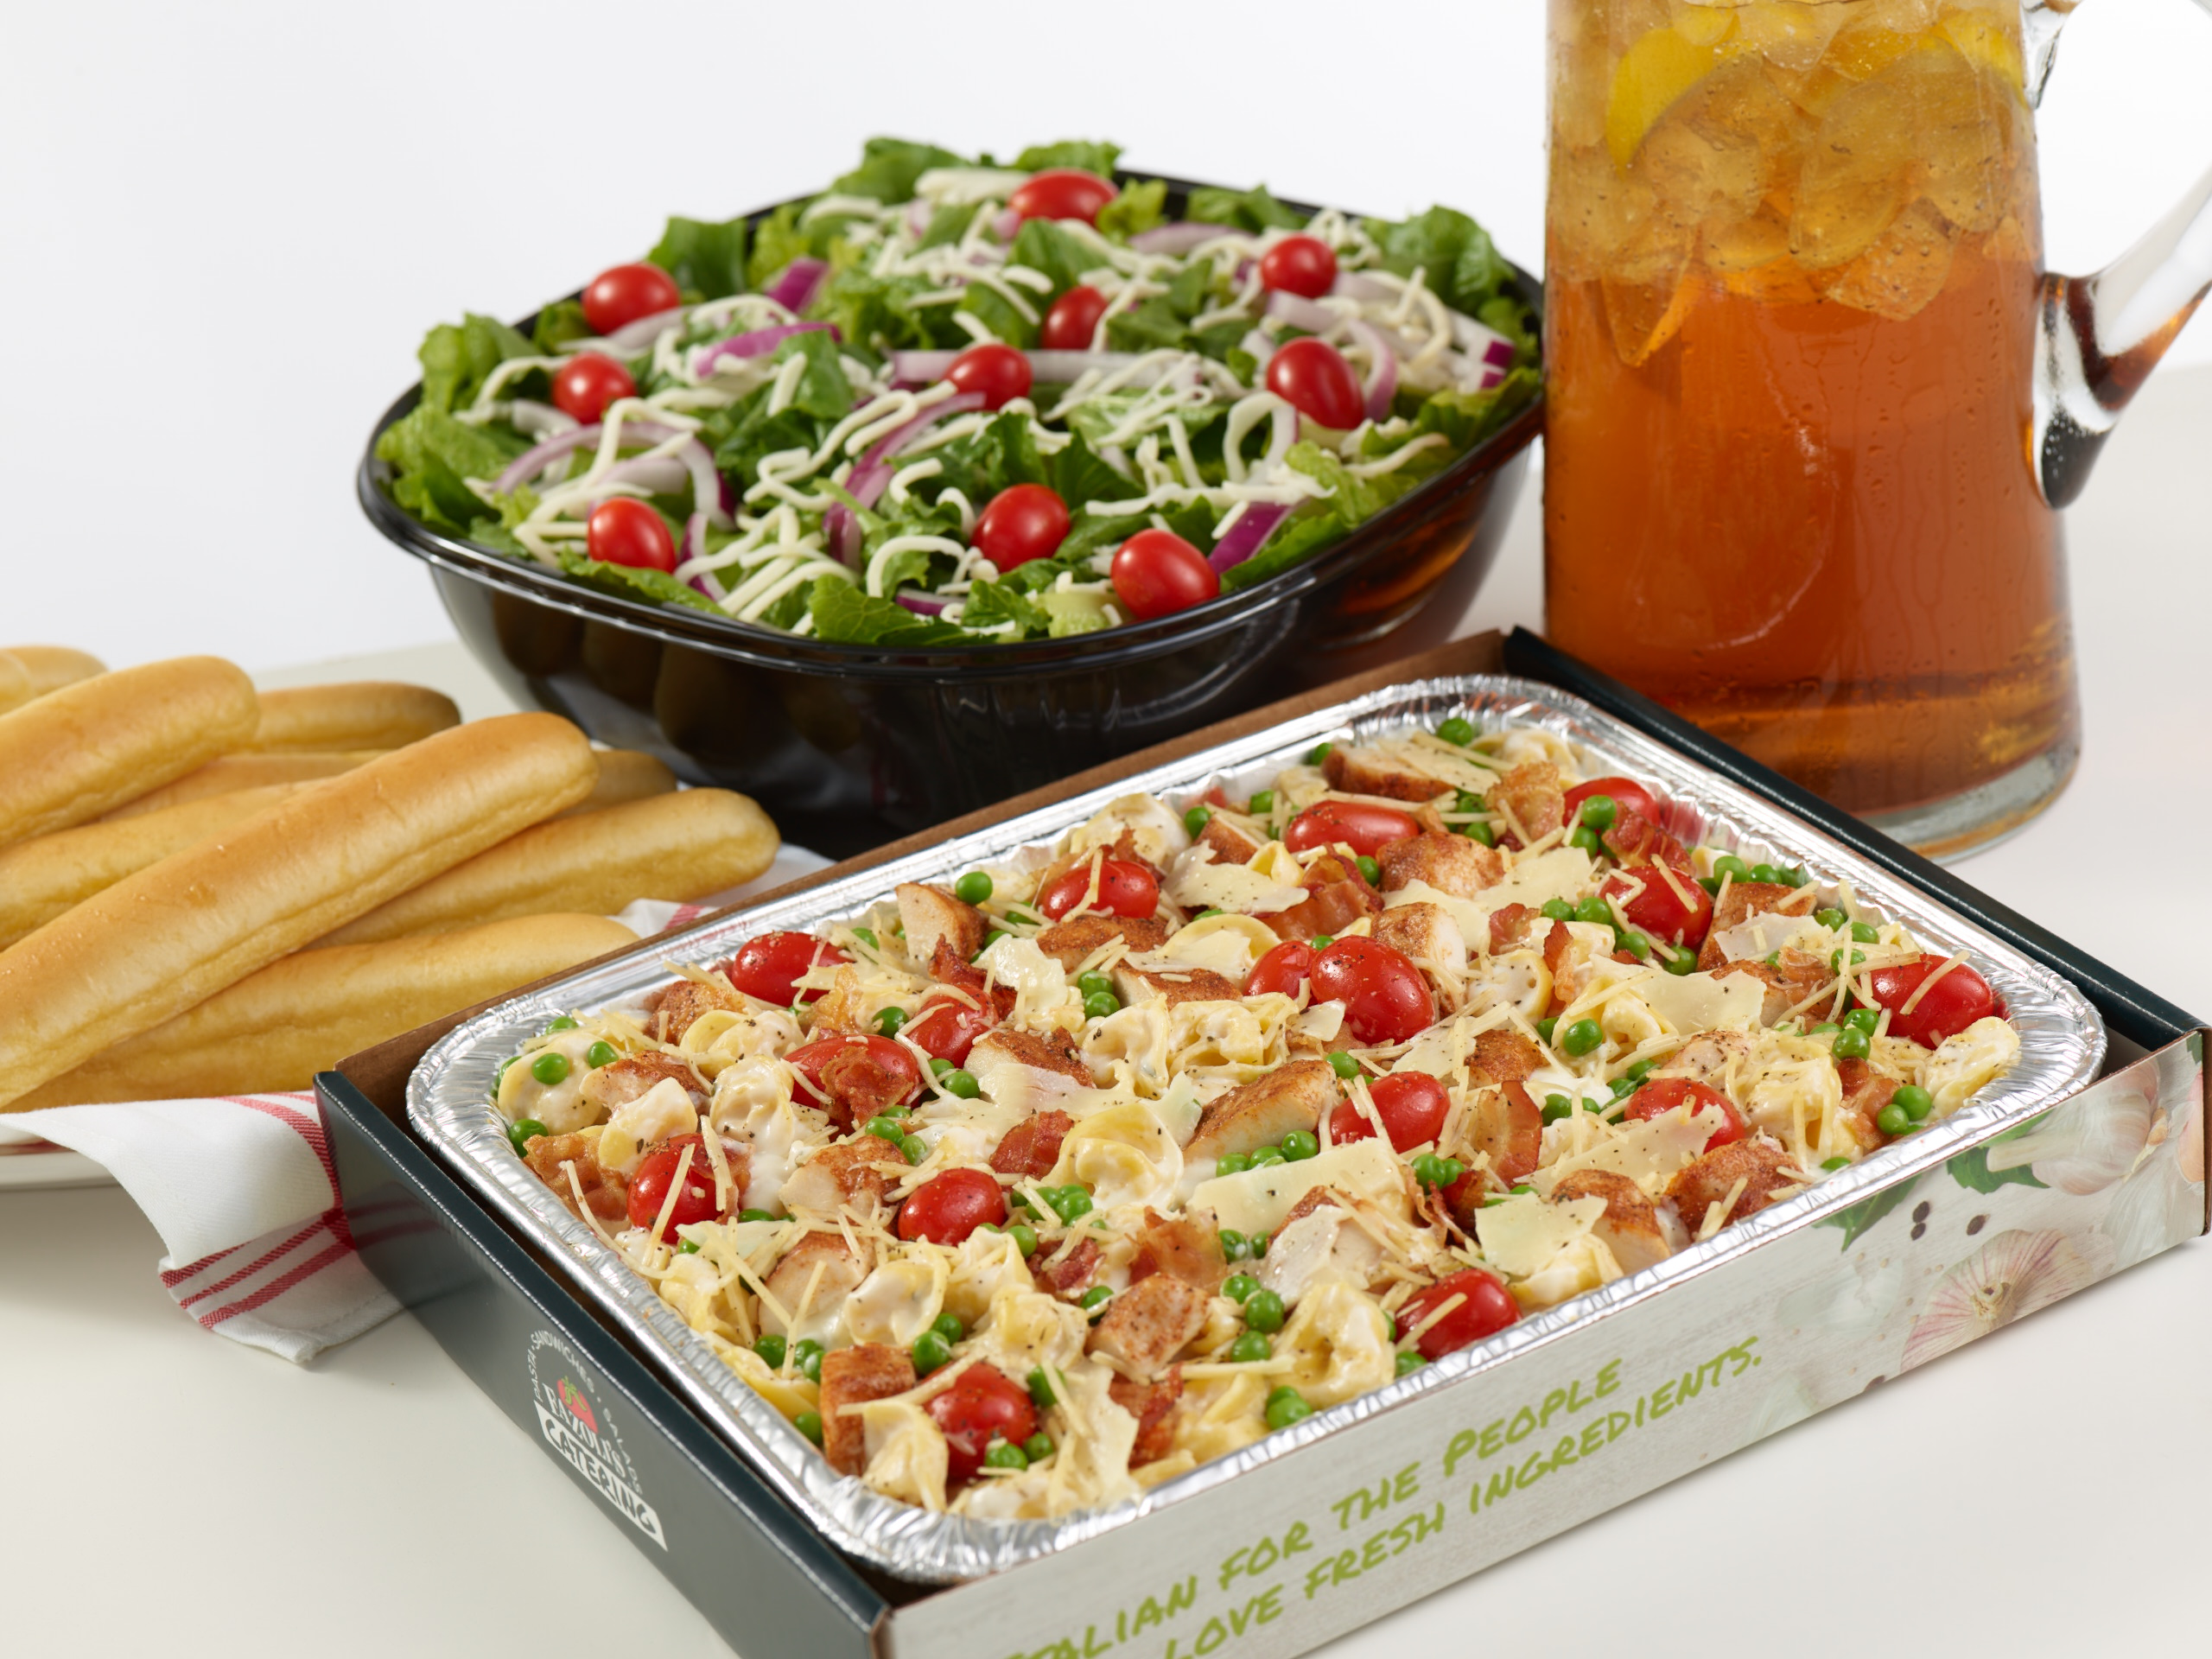 If you don't have hours to plan a meal for your office, try Fazoli's convenient catering packages.